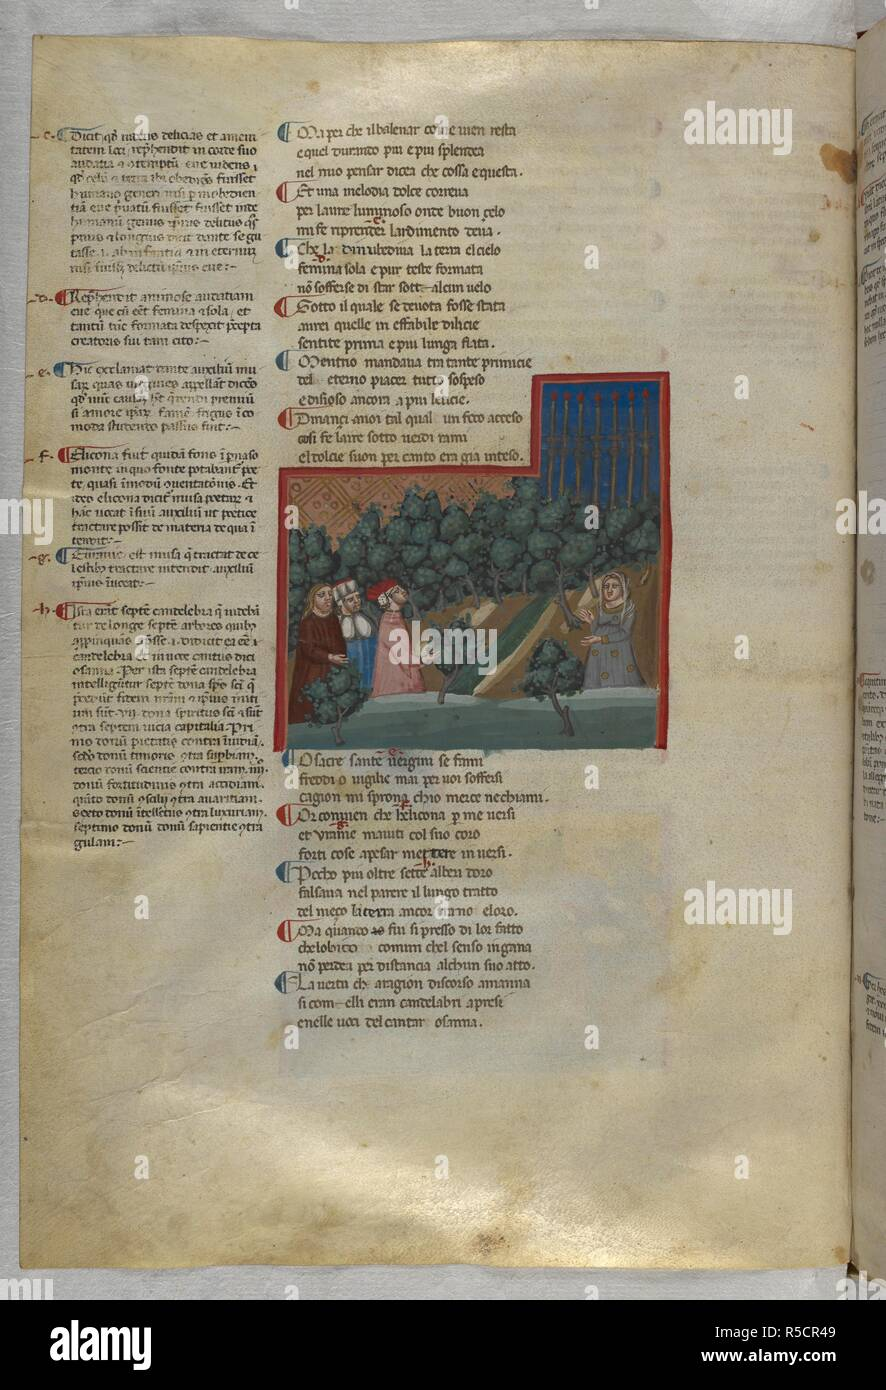 Purgatorio: Seven candles appear ahead. Dante Alighieri, Divina Commedia ( The Divine Comedy ), with a commentary in Latin. 1st half of the 14th century. Source: Egerton 943, f.115v. Language: Italian, Latin. - Stock Image